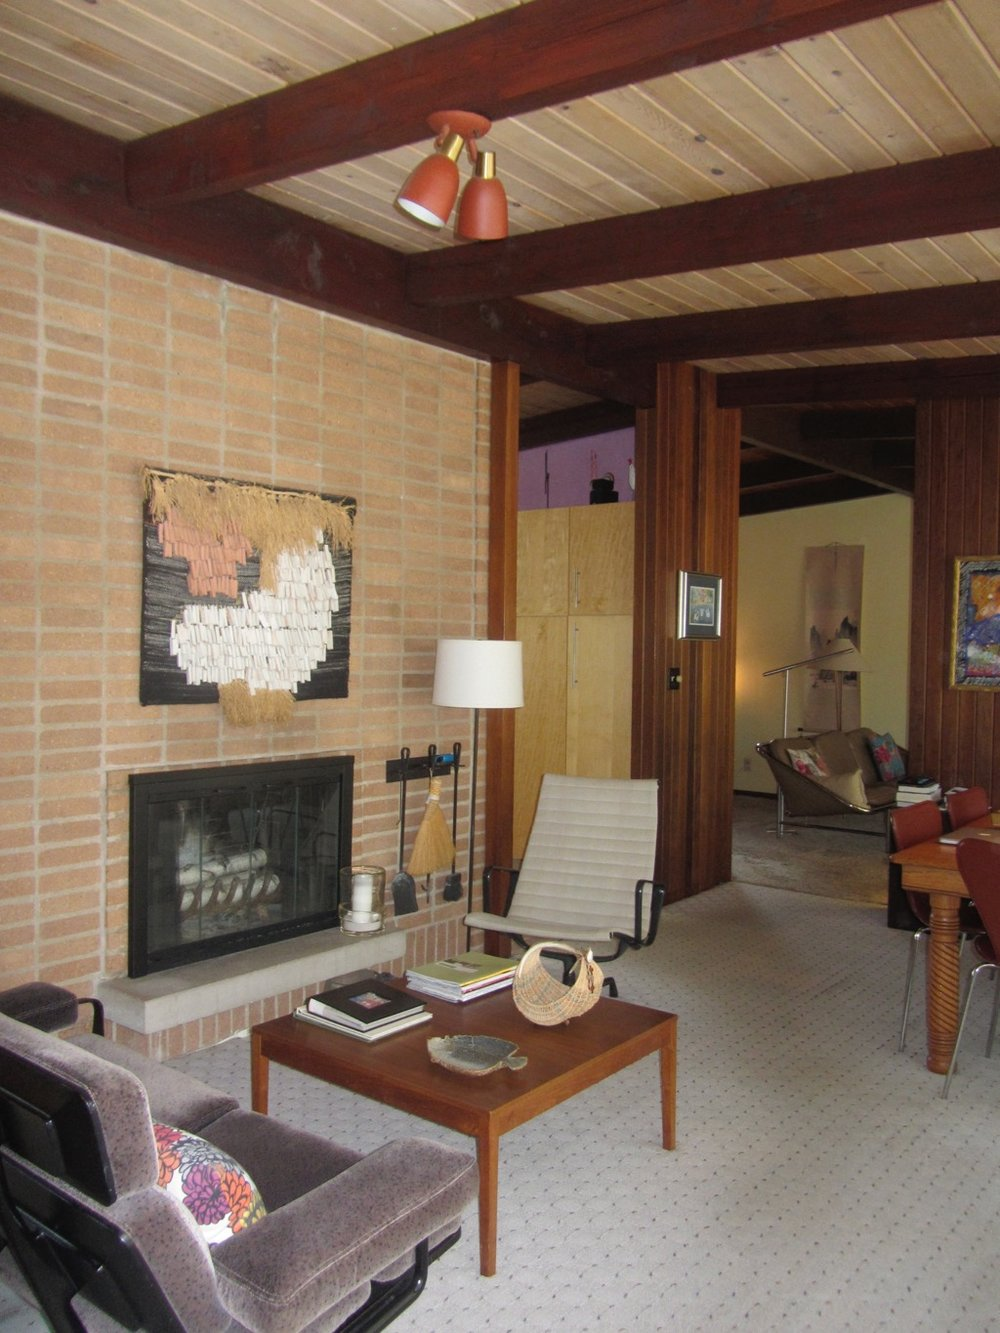 3 2301 ACADEMY FIREPLACE 2013.jpg